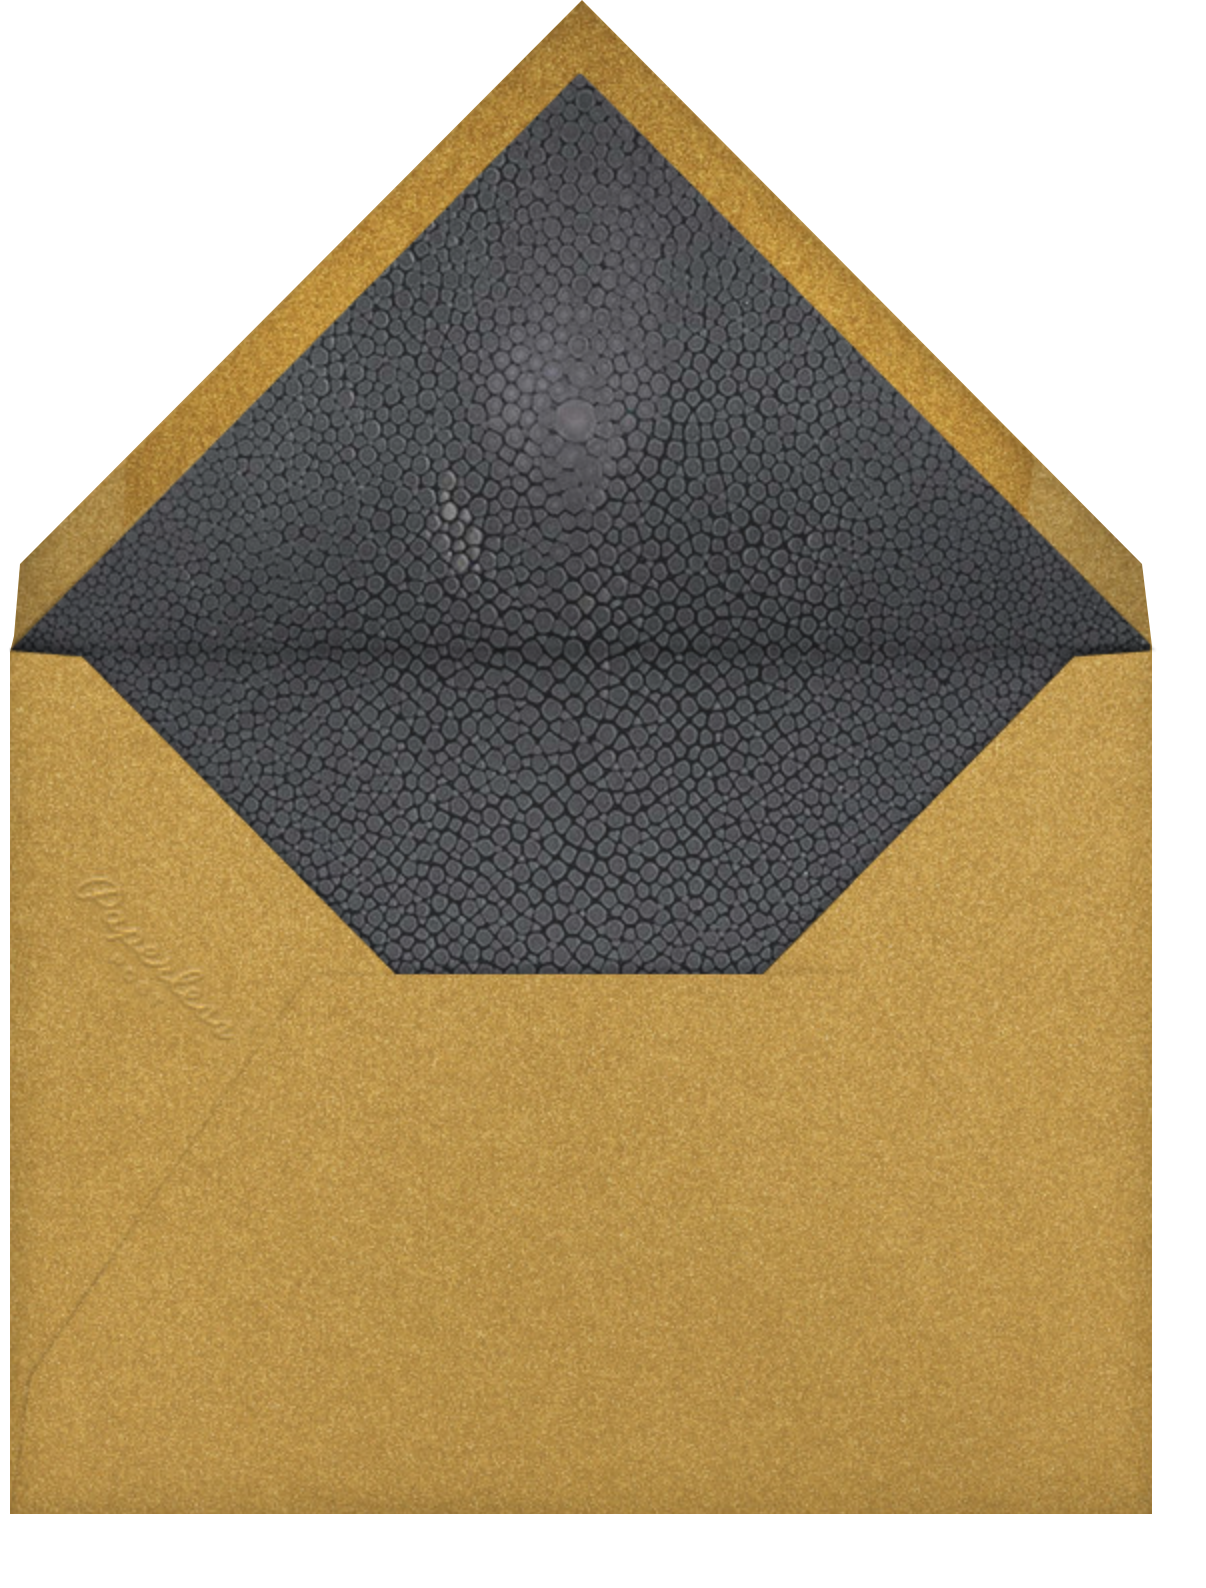 Marbleized - Kelly Wearstler - Bat and bar mitzvah - envelope back